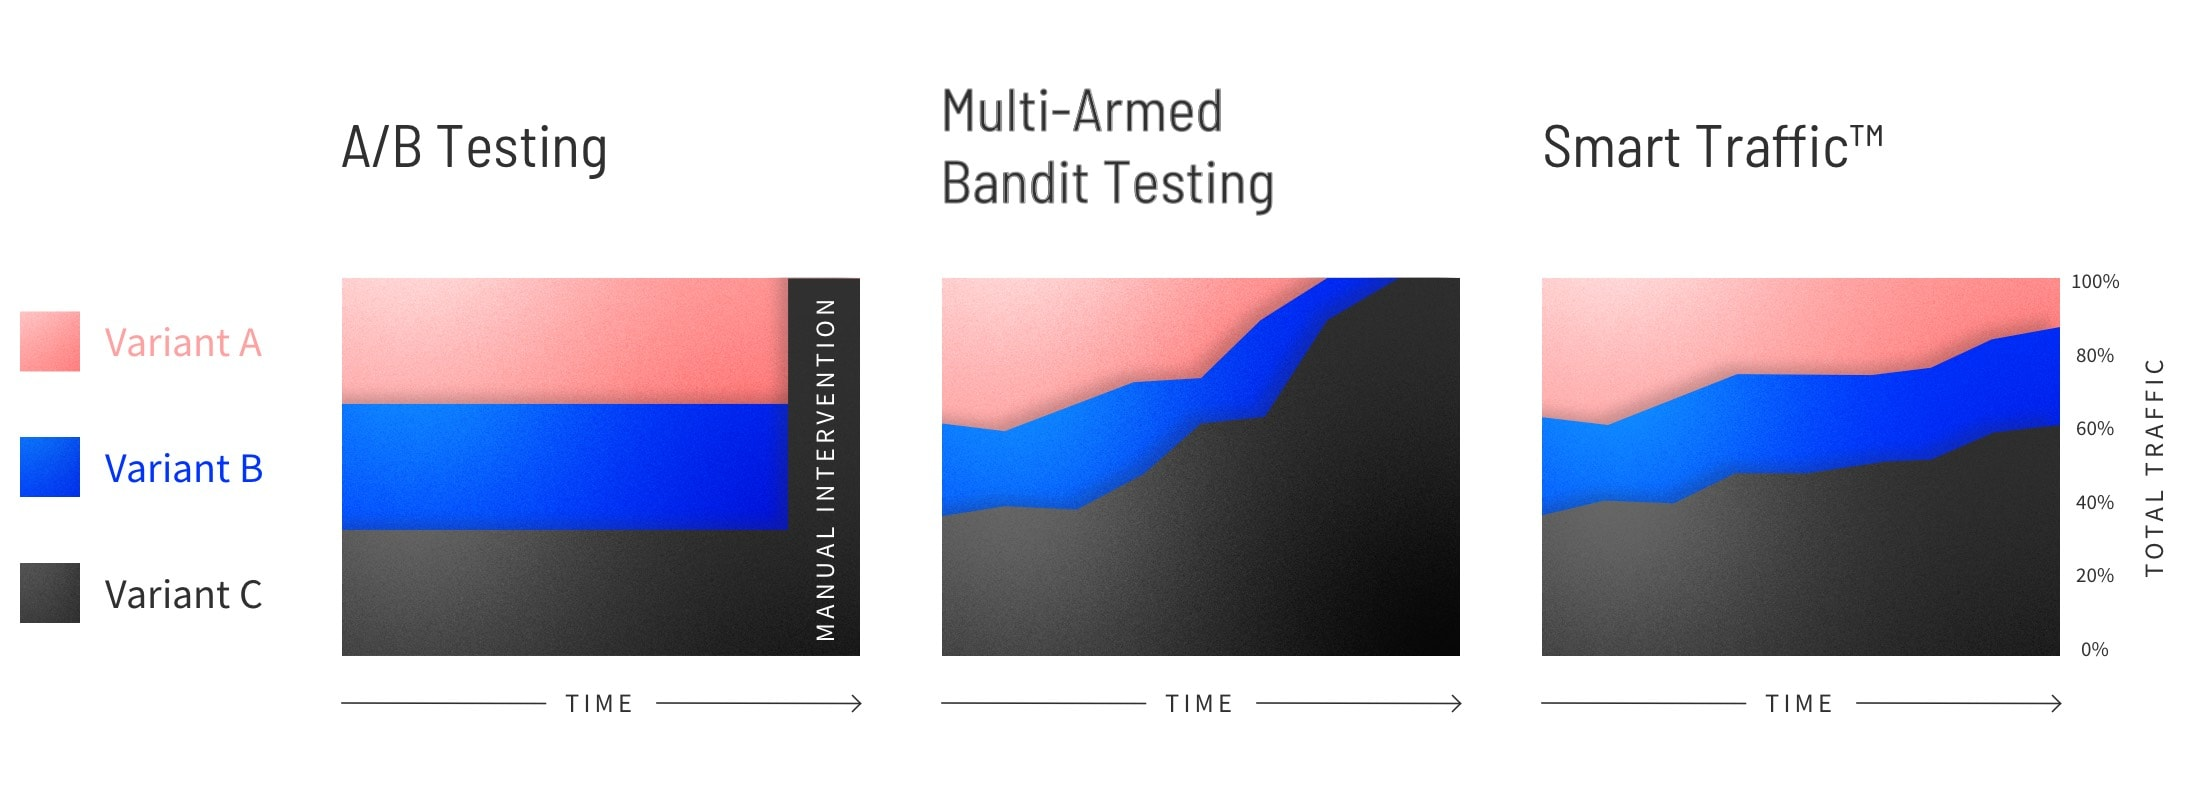 How traffic gets allocated in A/B testing vs Smart Traffic